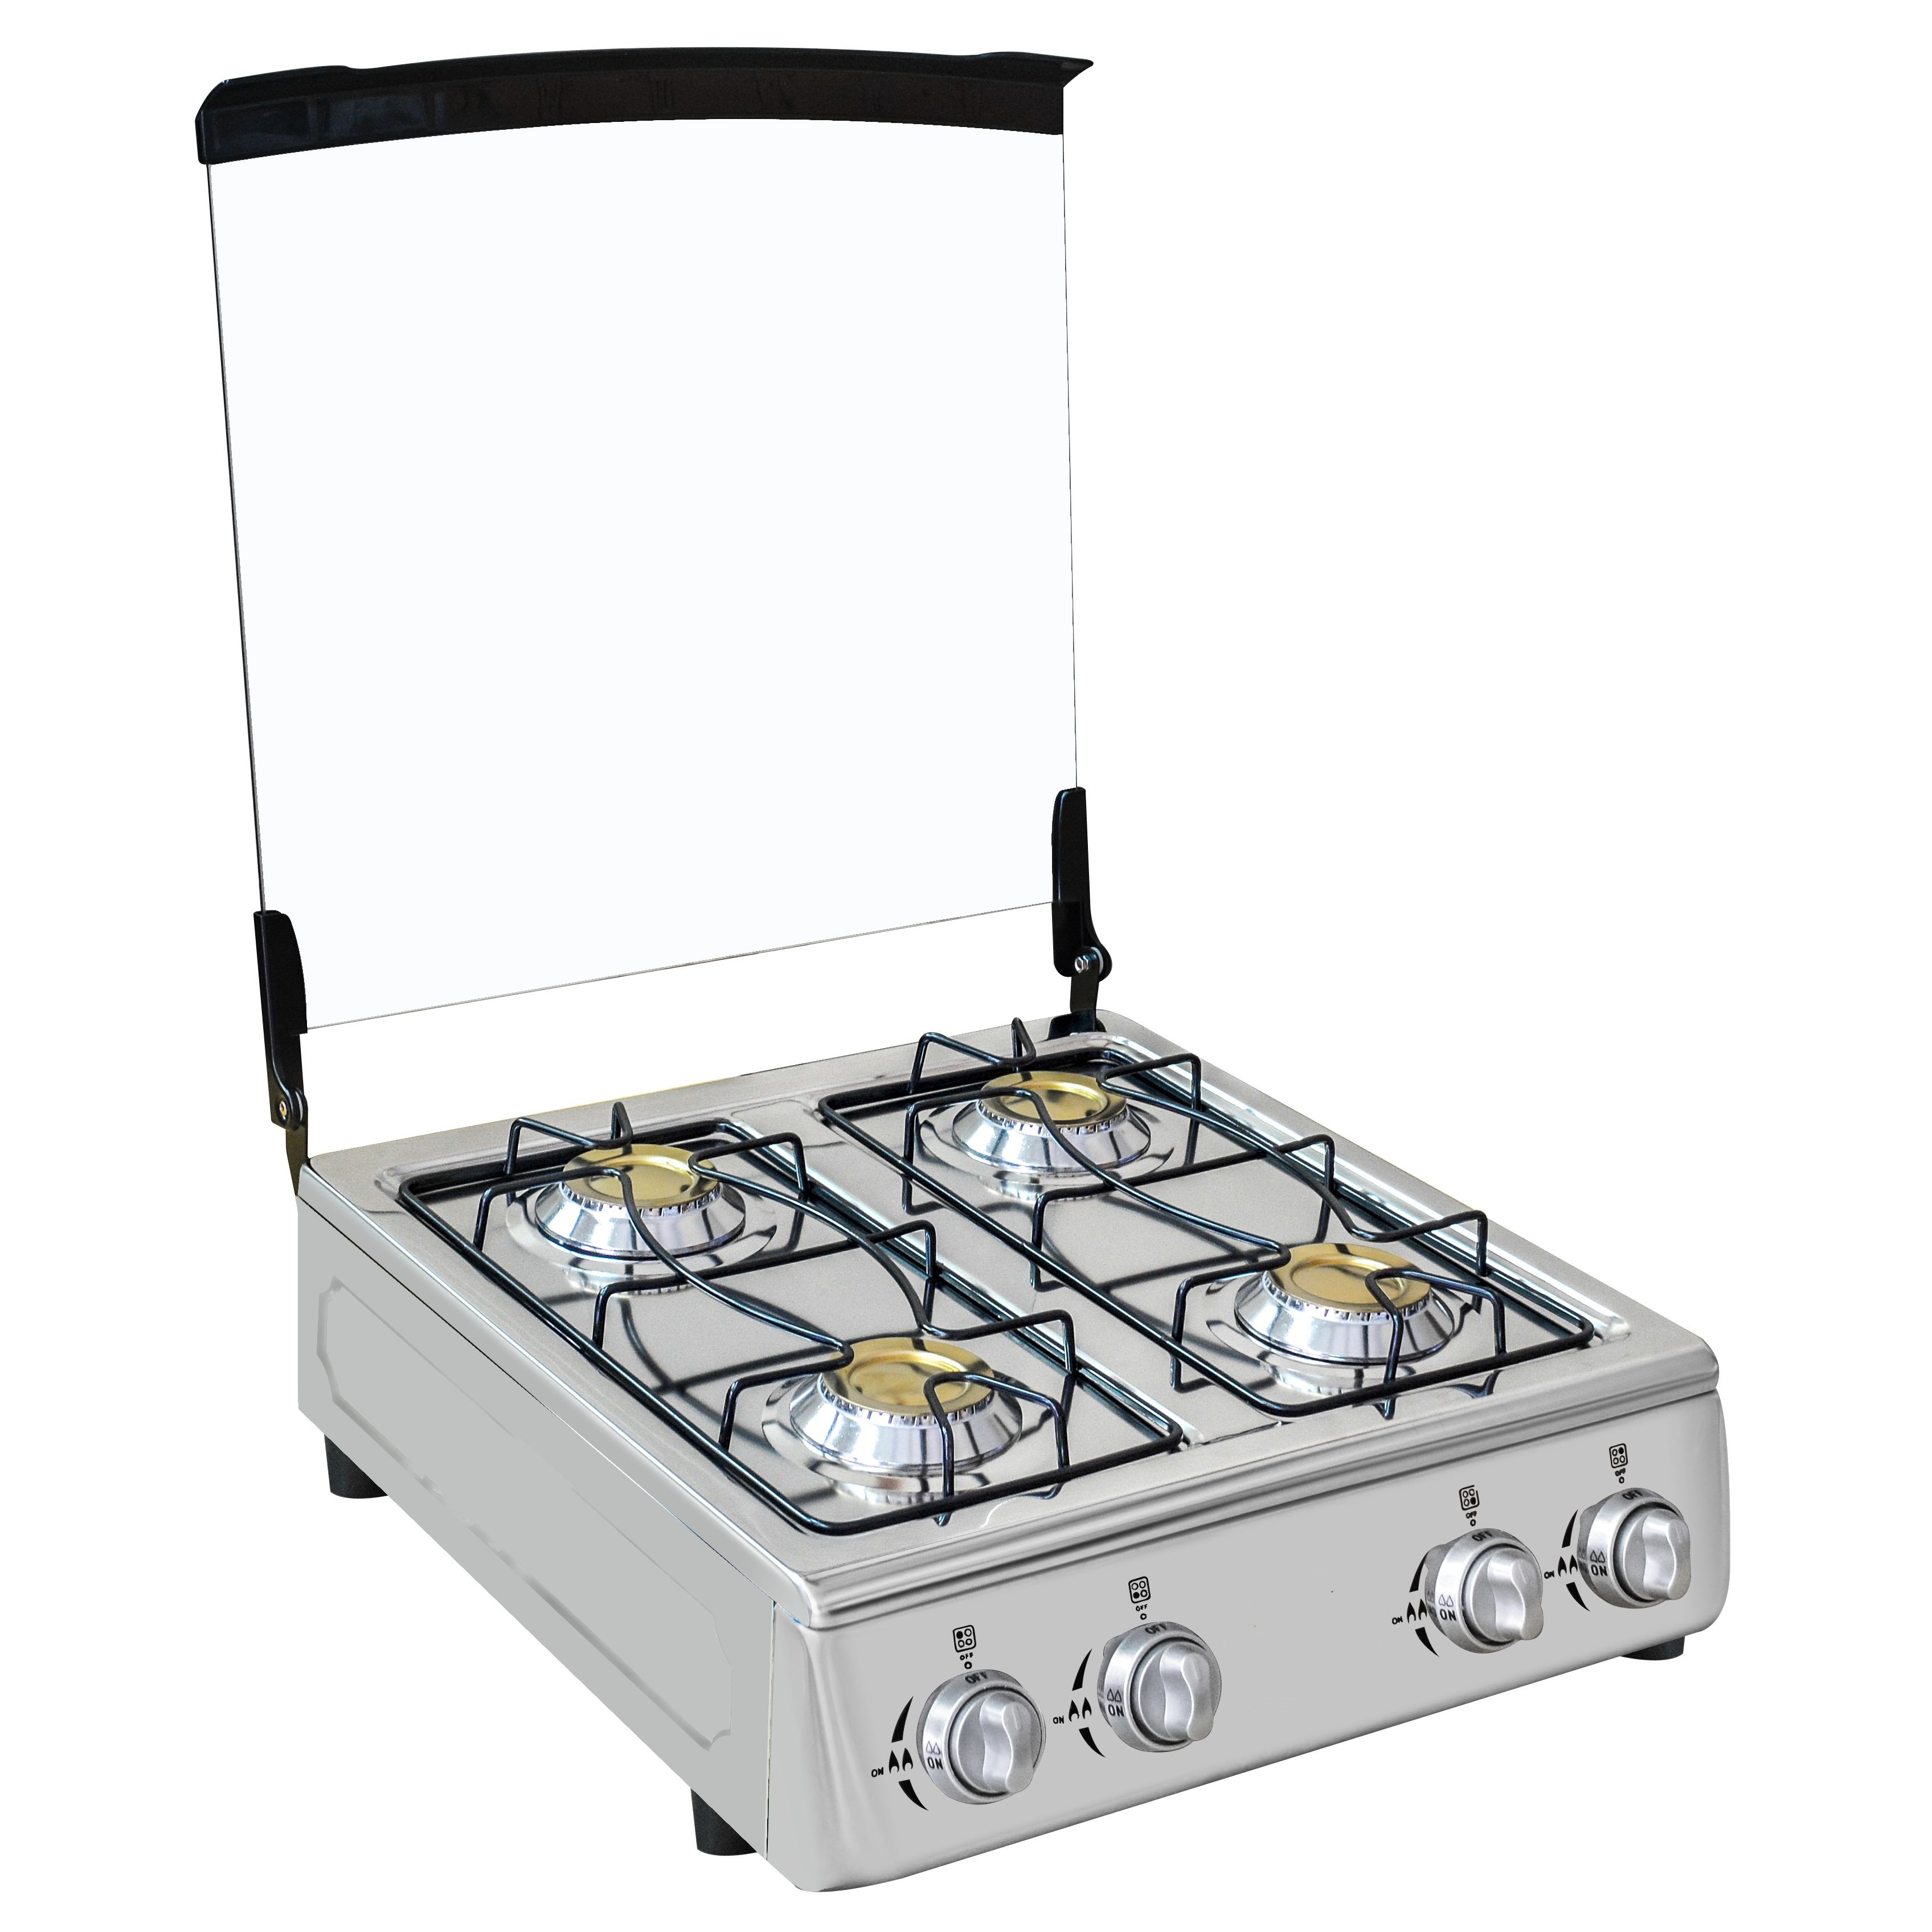 Stainless Steel 4 Burner Gas Cooker With Glass Lid Buy 4 Burner Gas Stove With Glass Lid Gas Burner 4 Burner Table Top Gas Cooker Product On Alibaba Com